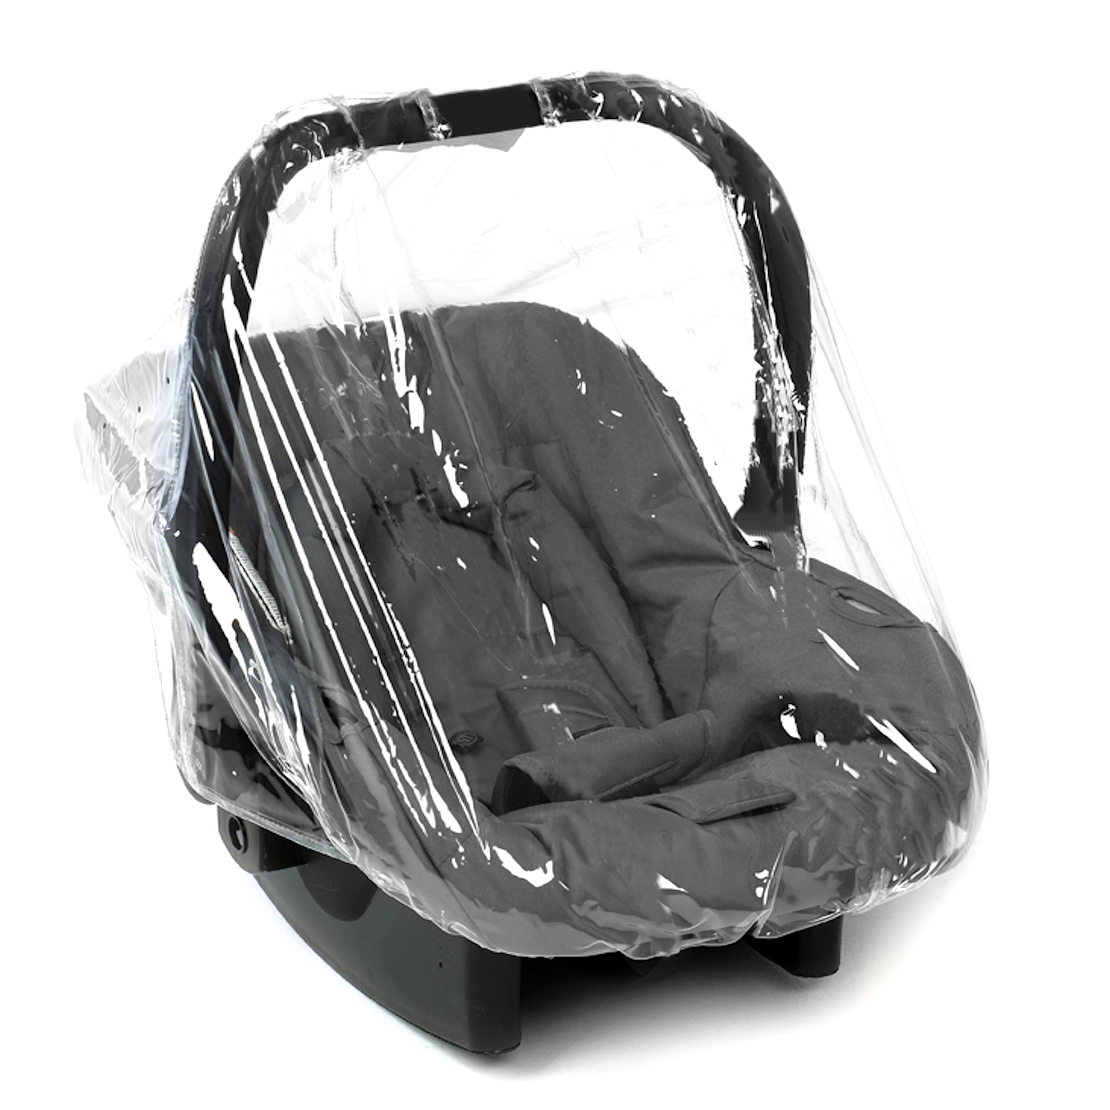 4Baby Universal Car Seat Raincover   Buy at Online4baby